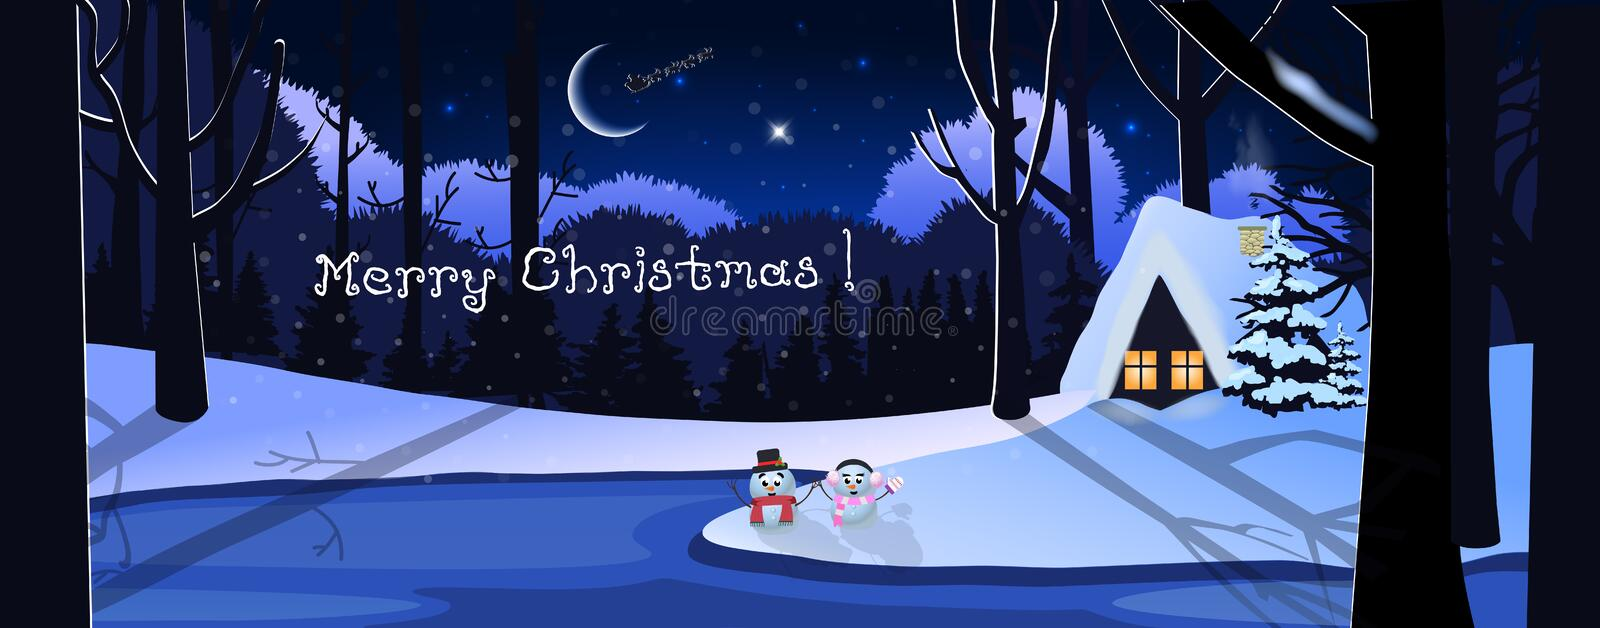 Merry christmas greeting card of snowy night landscape with little house and cute snowmen stock illustration